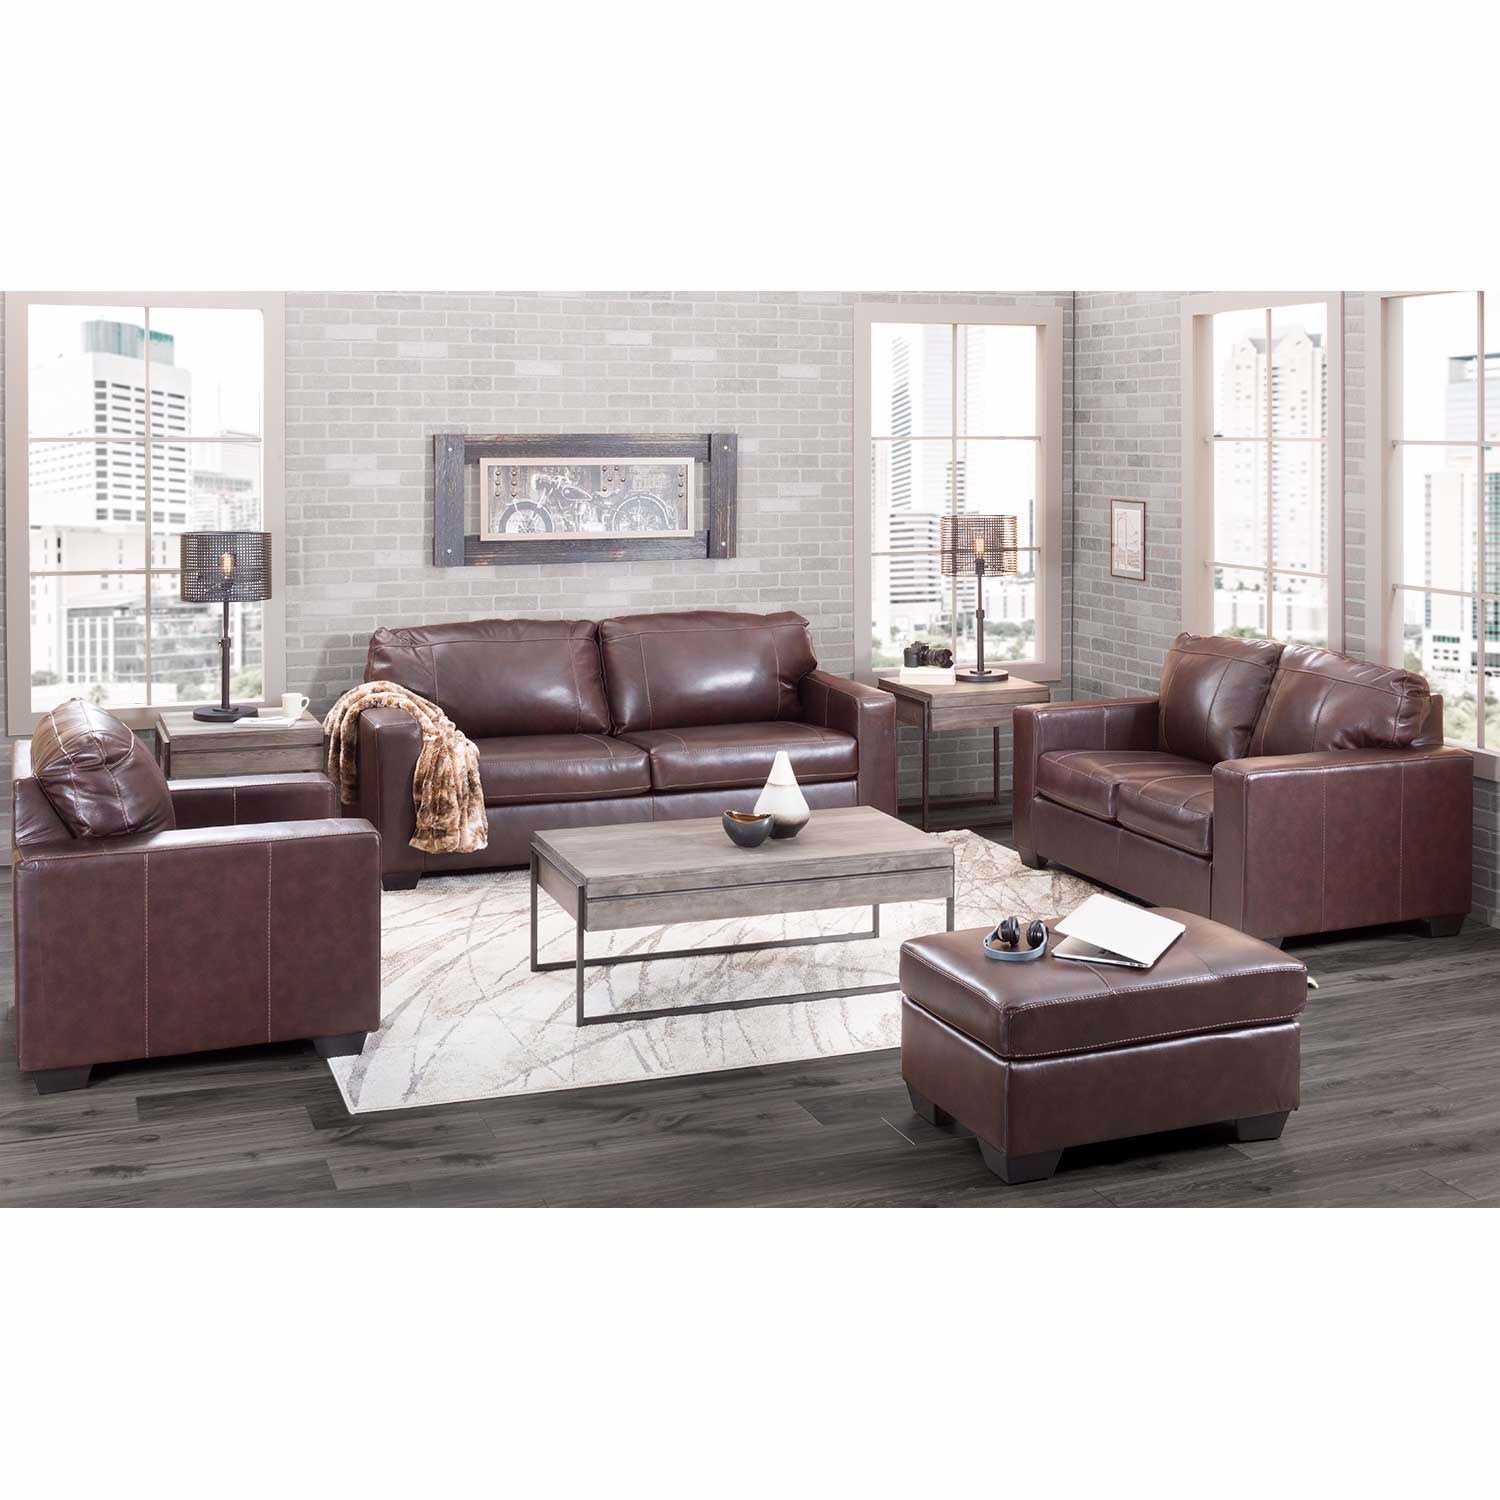 Picture of Morelos Brown Italian Leather Loveseat